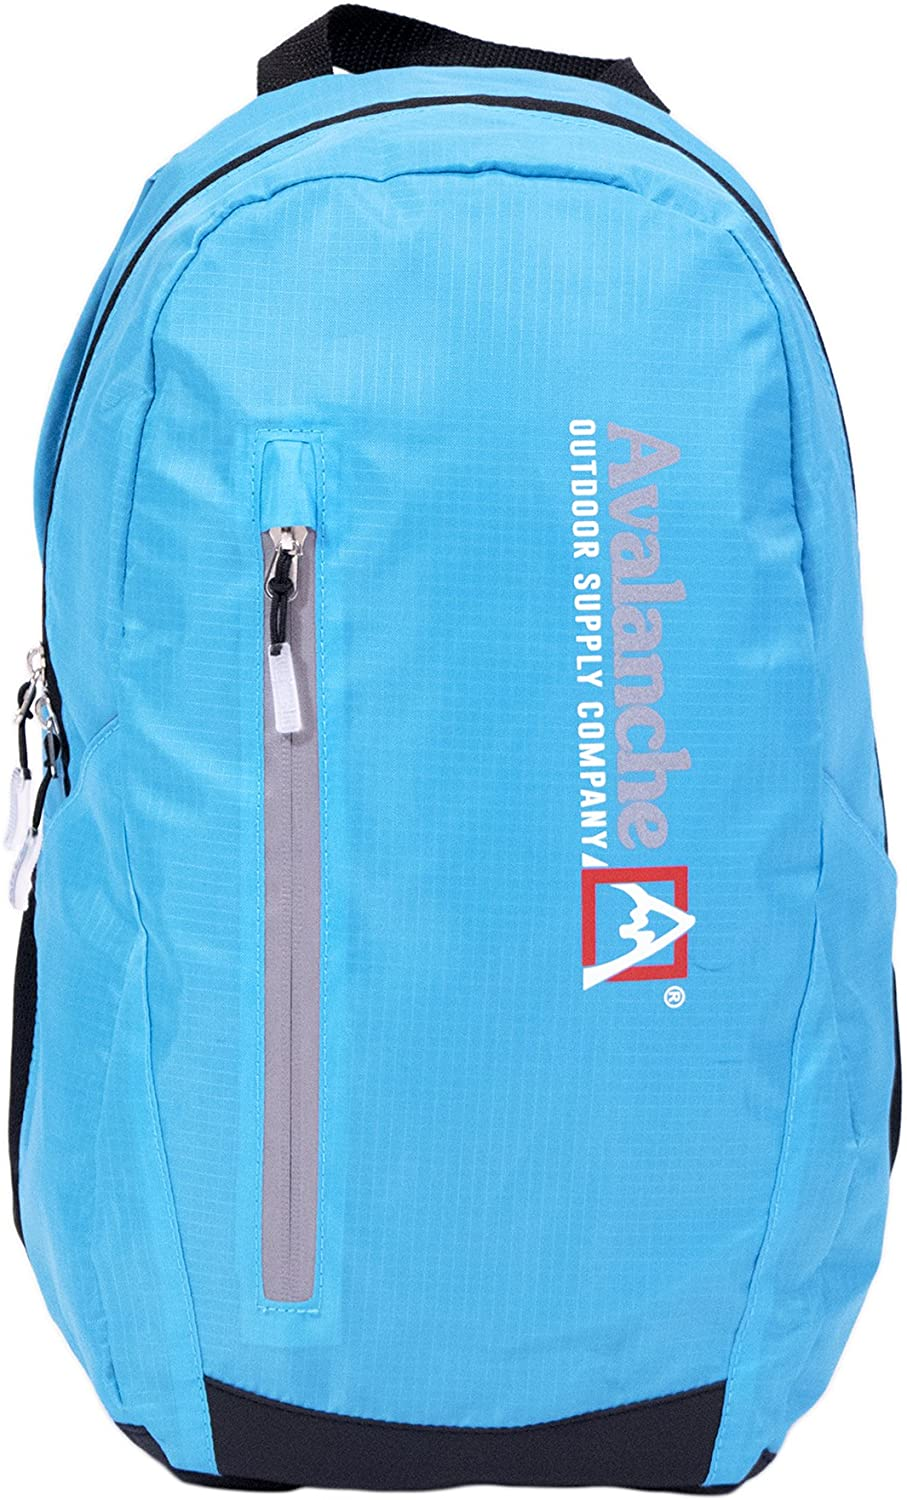 Avalanche Yutan 17in Outdoor Backpack Ripstop Fabric